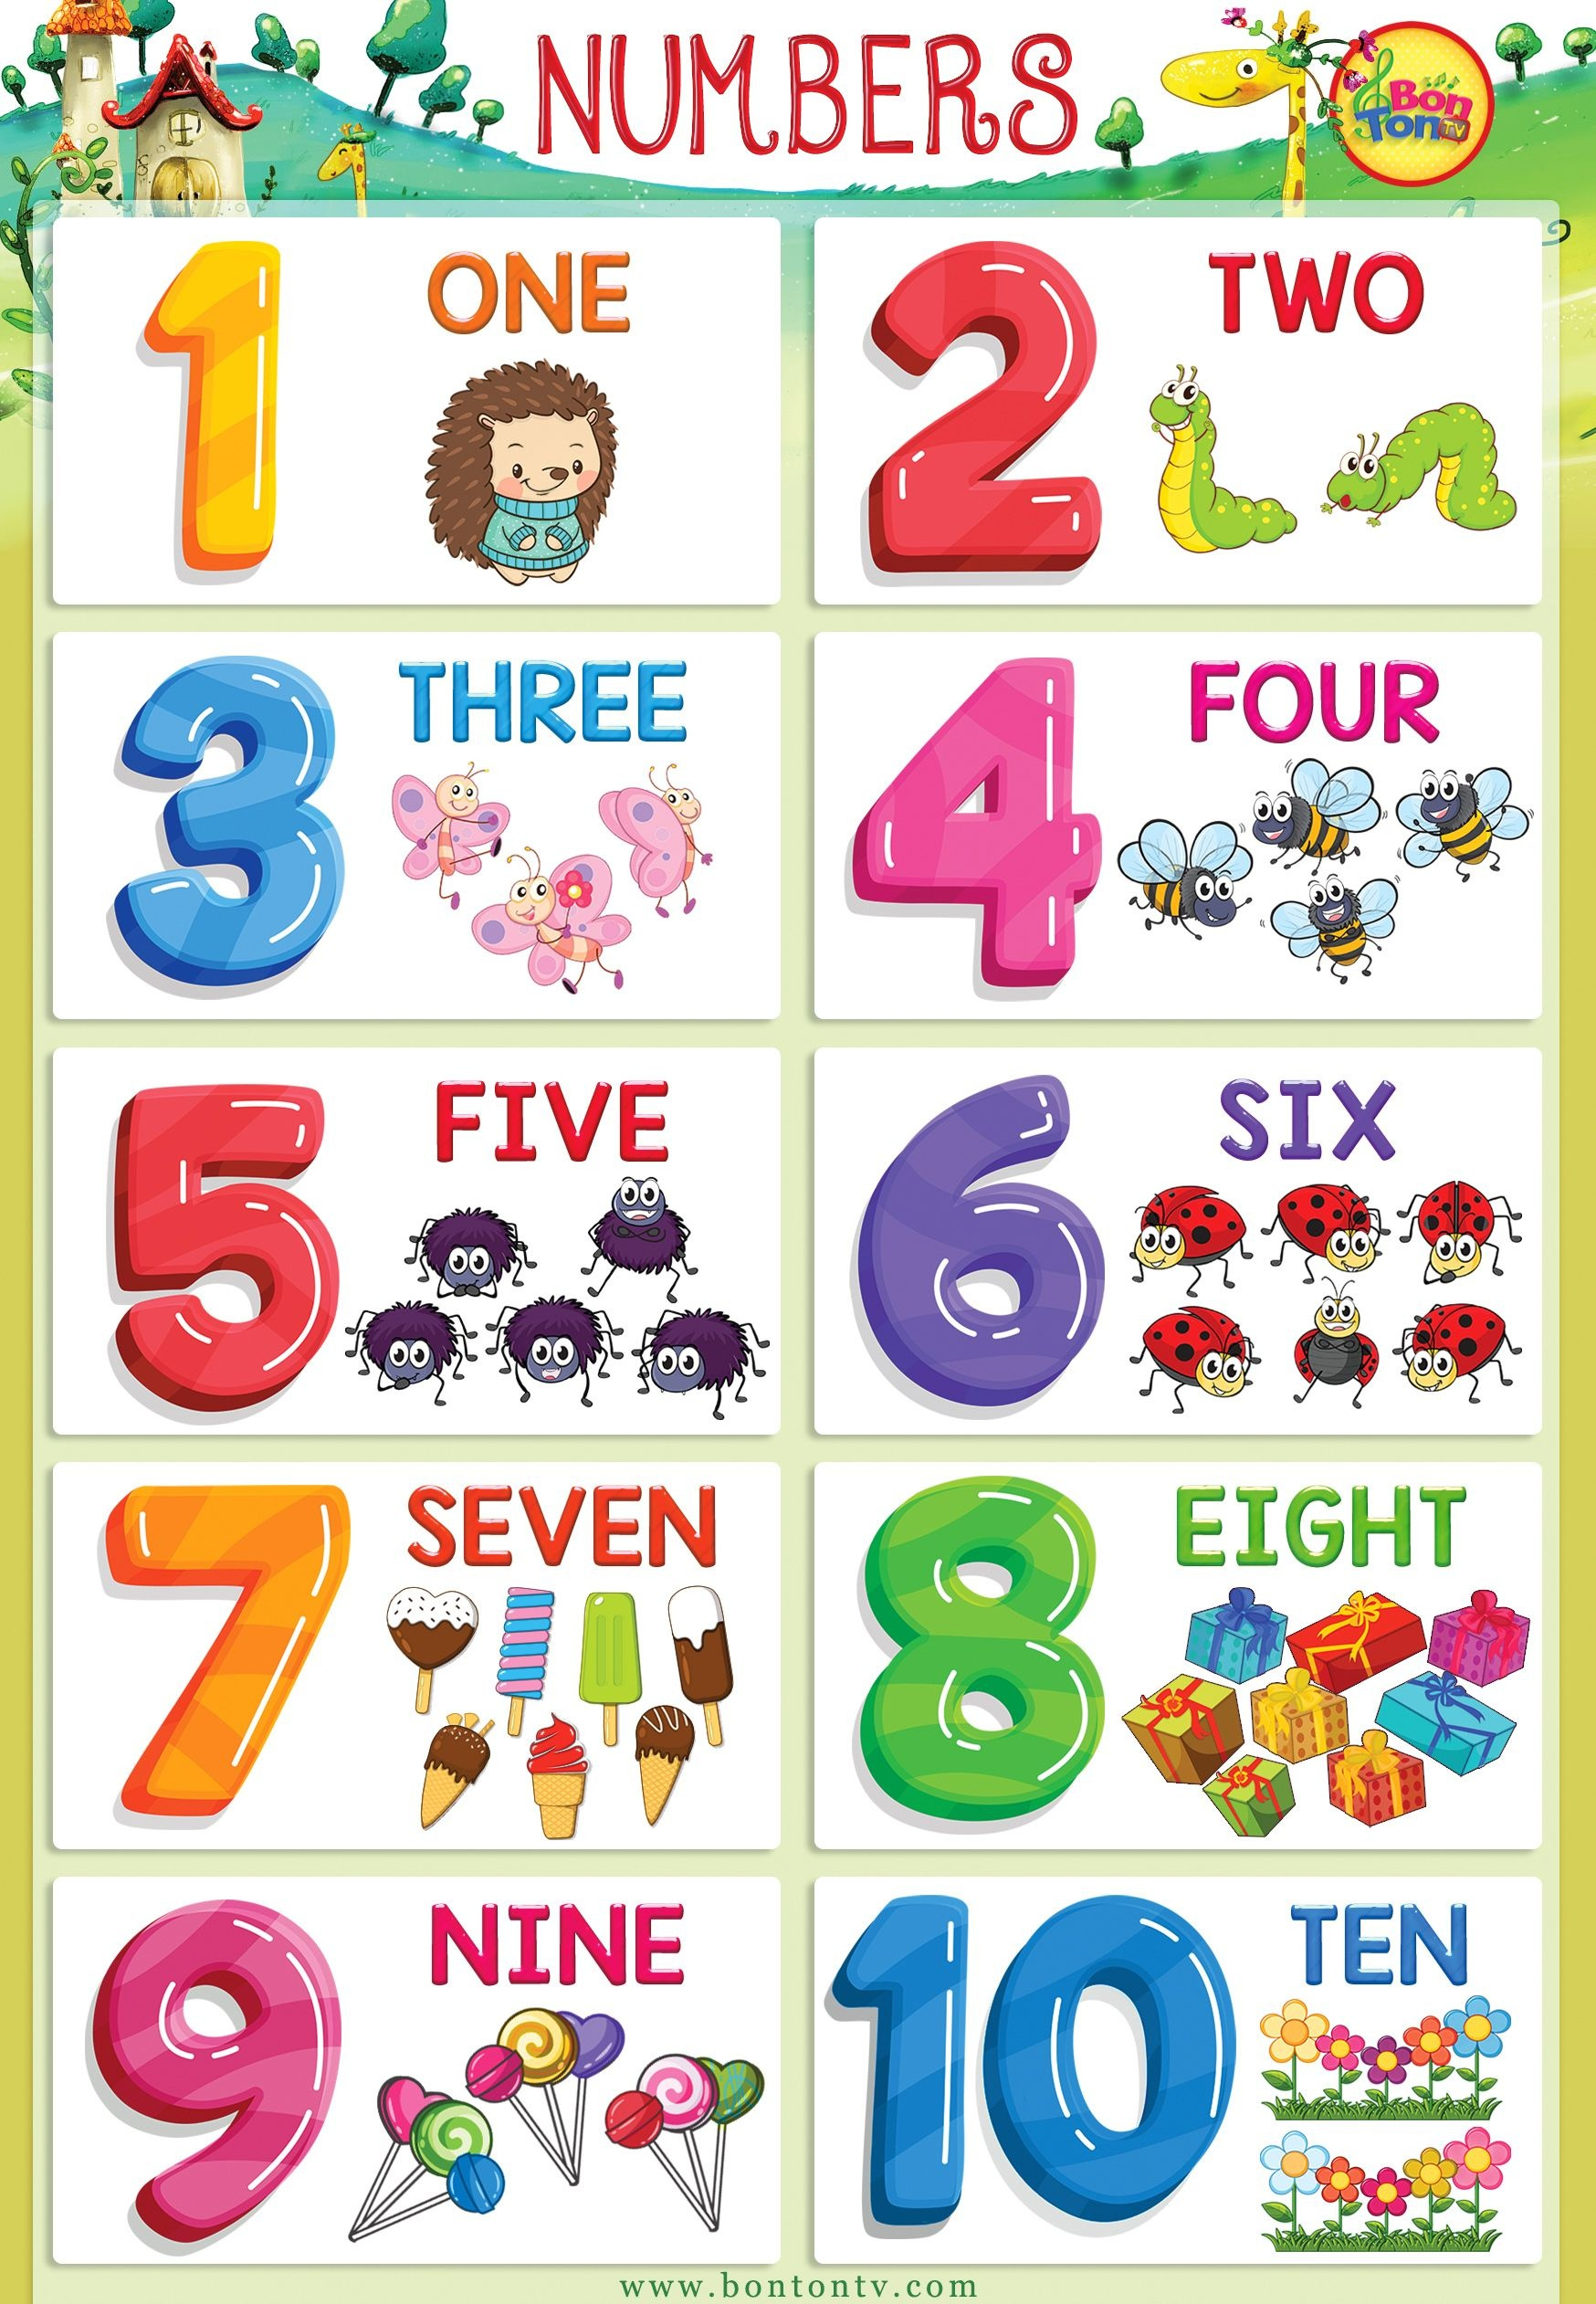 Numbers Poster - Numbers 1-10 For Kids - Math - Printable Flash Card - Free Printable Ged Flashcards